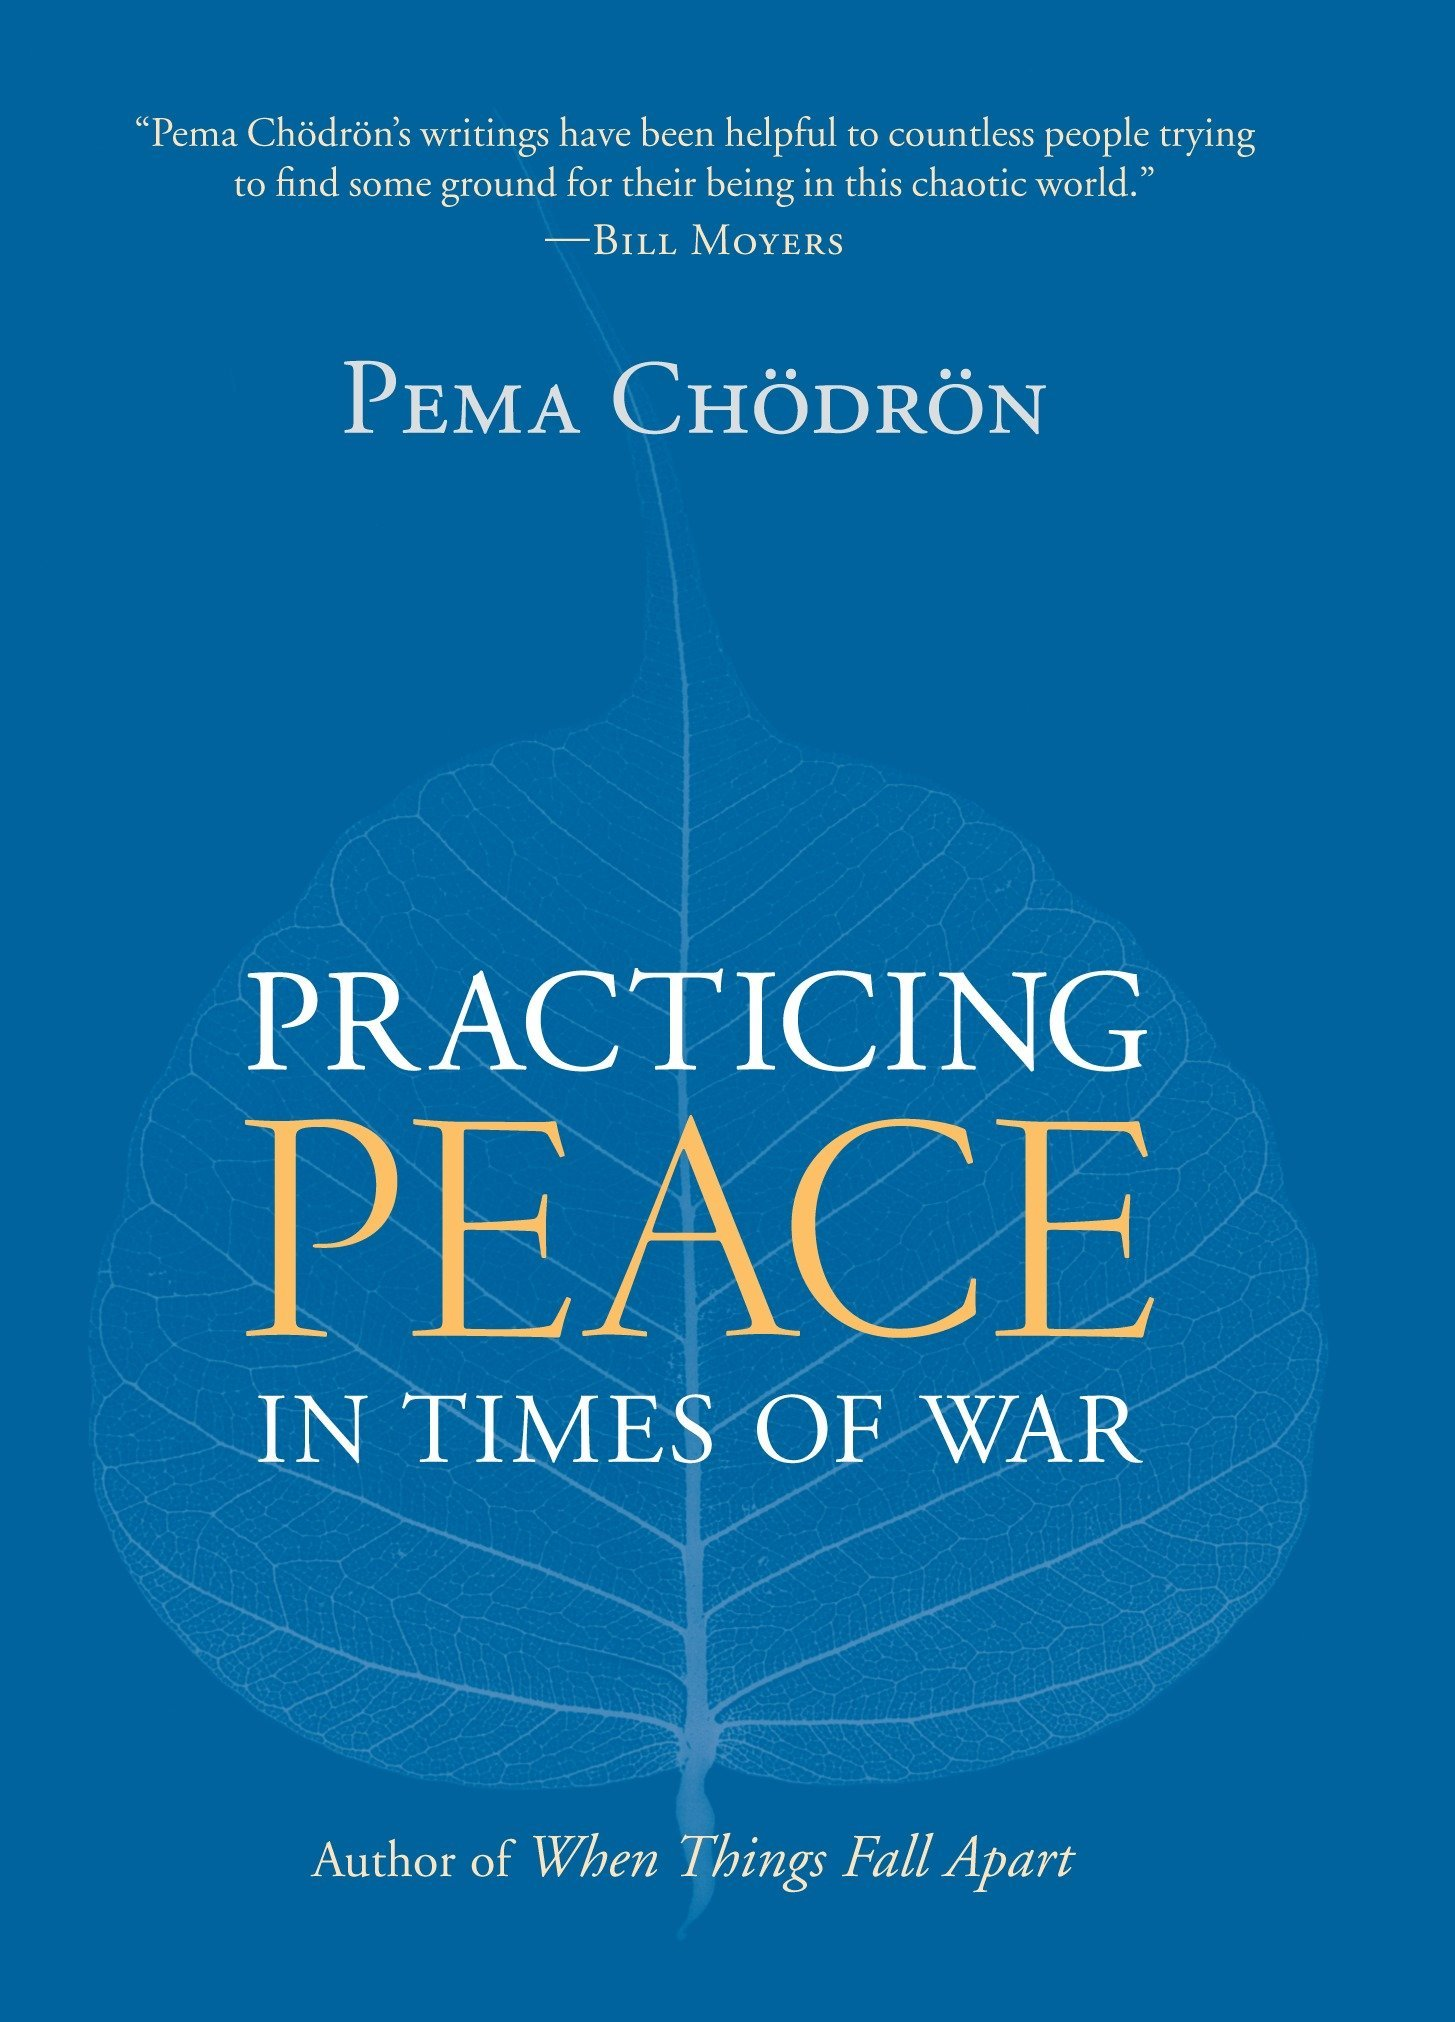 Pema Practicing Peace cover art